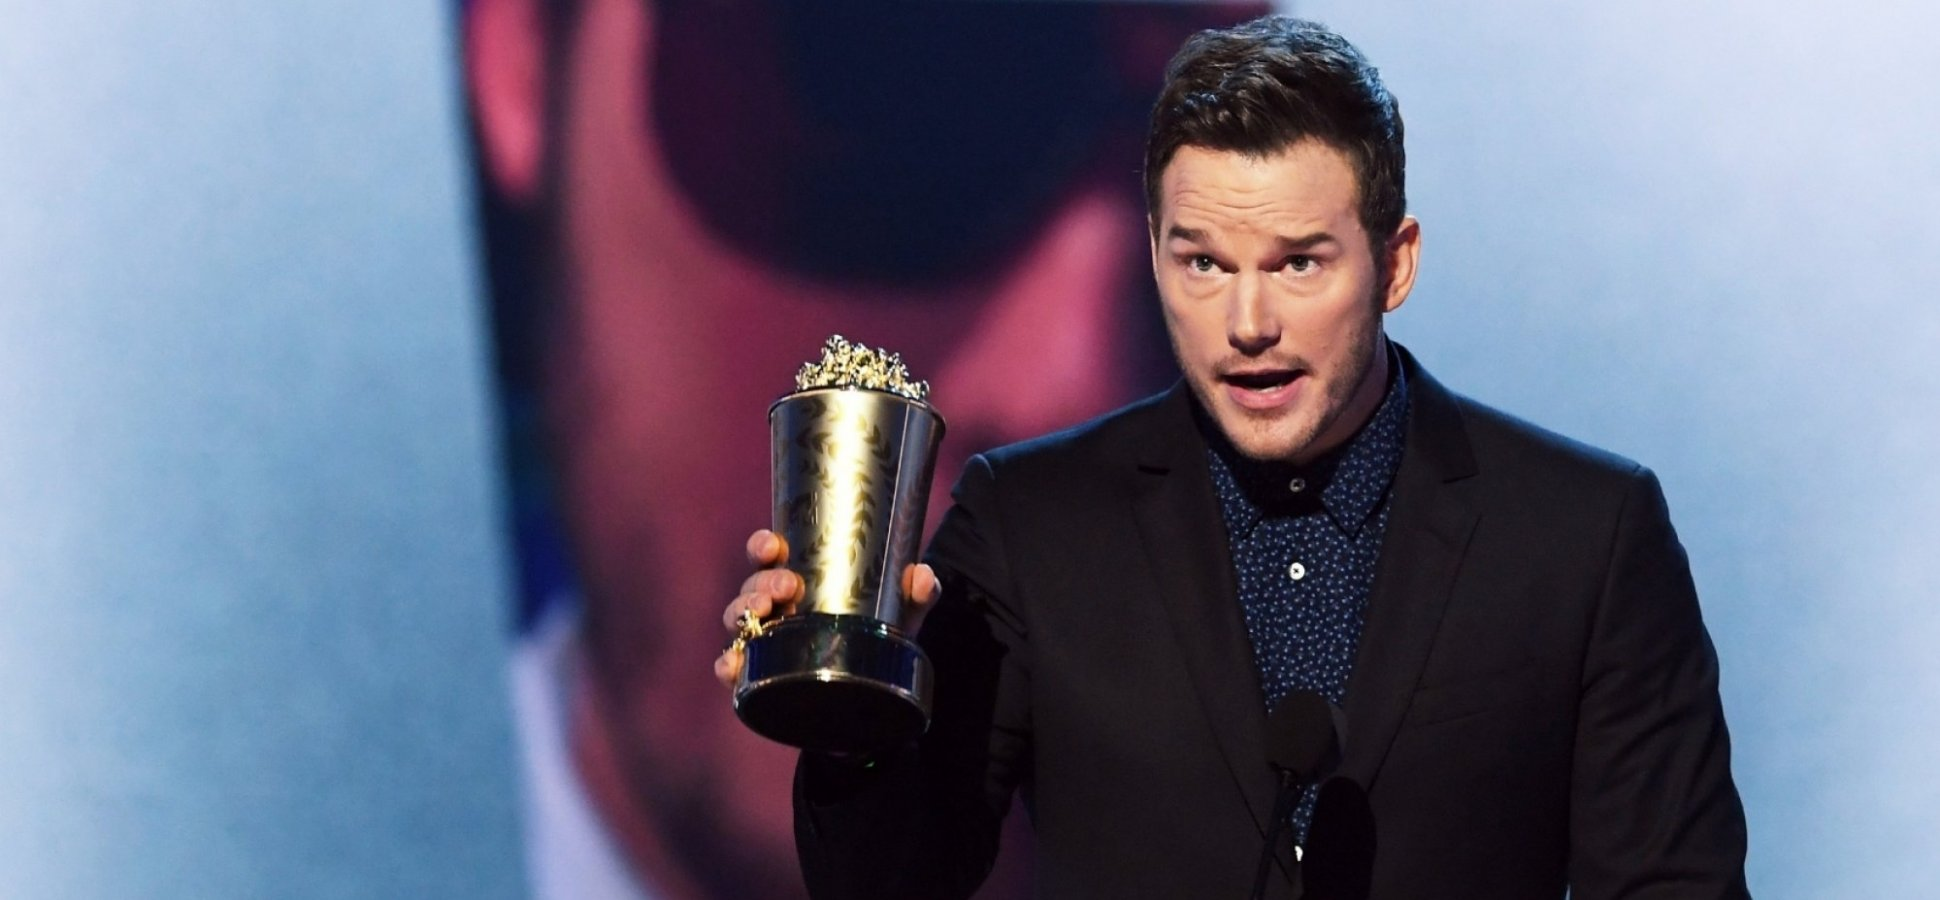 Chris Pratt's Unforgettable Acceptance Speech Reveals 9 Inspiring Rules to Live By